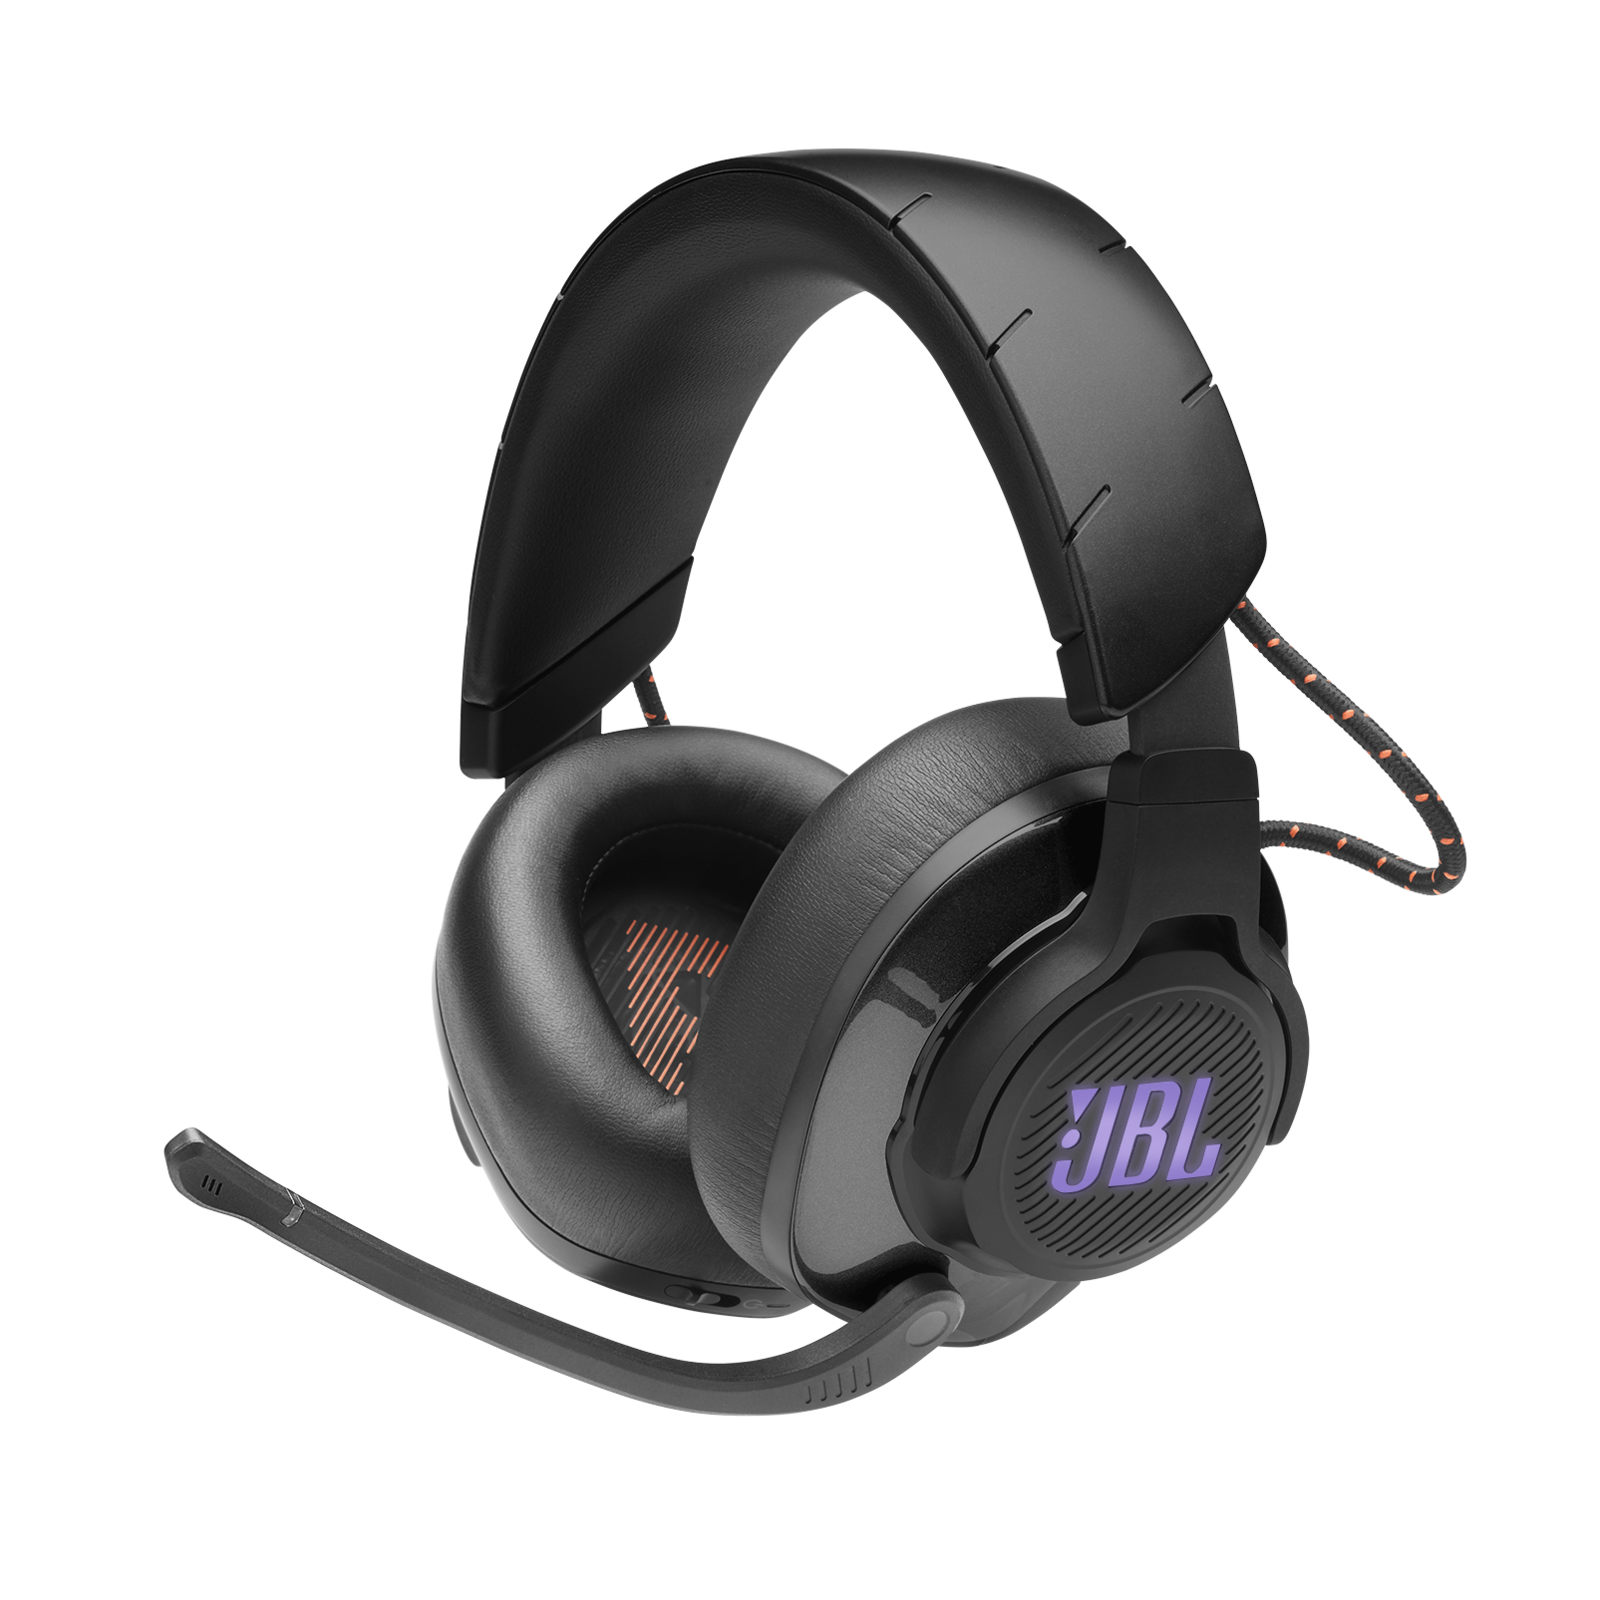 JBL Quantum 600 Wireless Gaming Headset for PC image